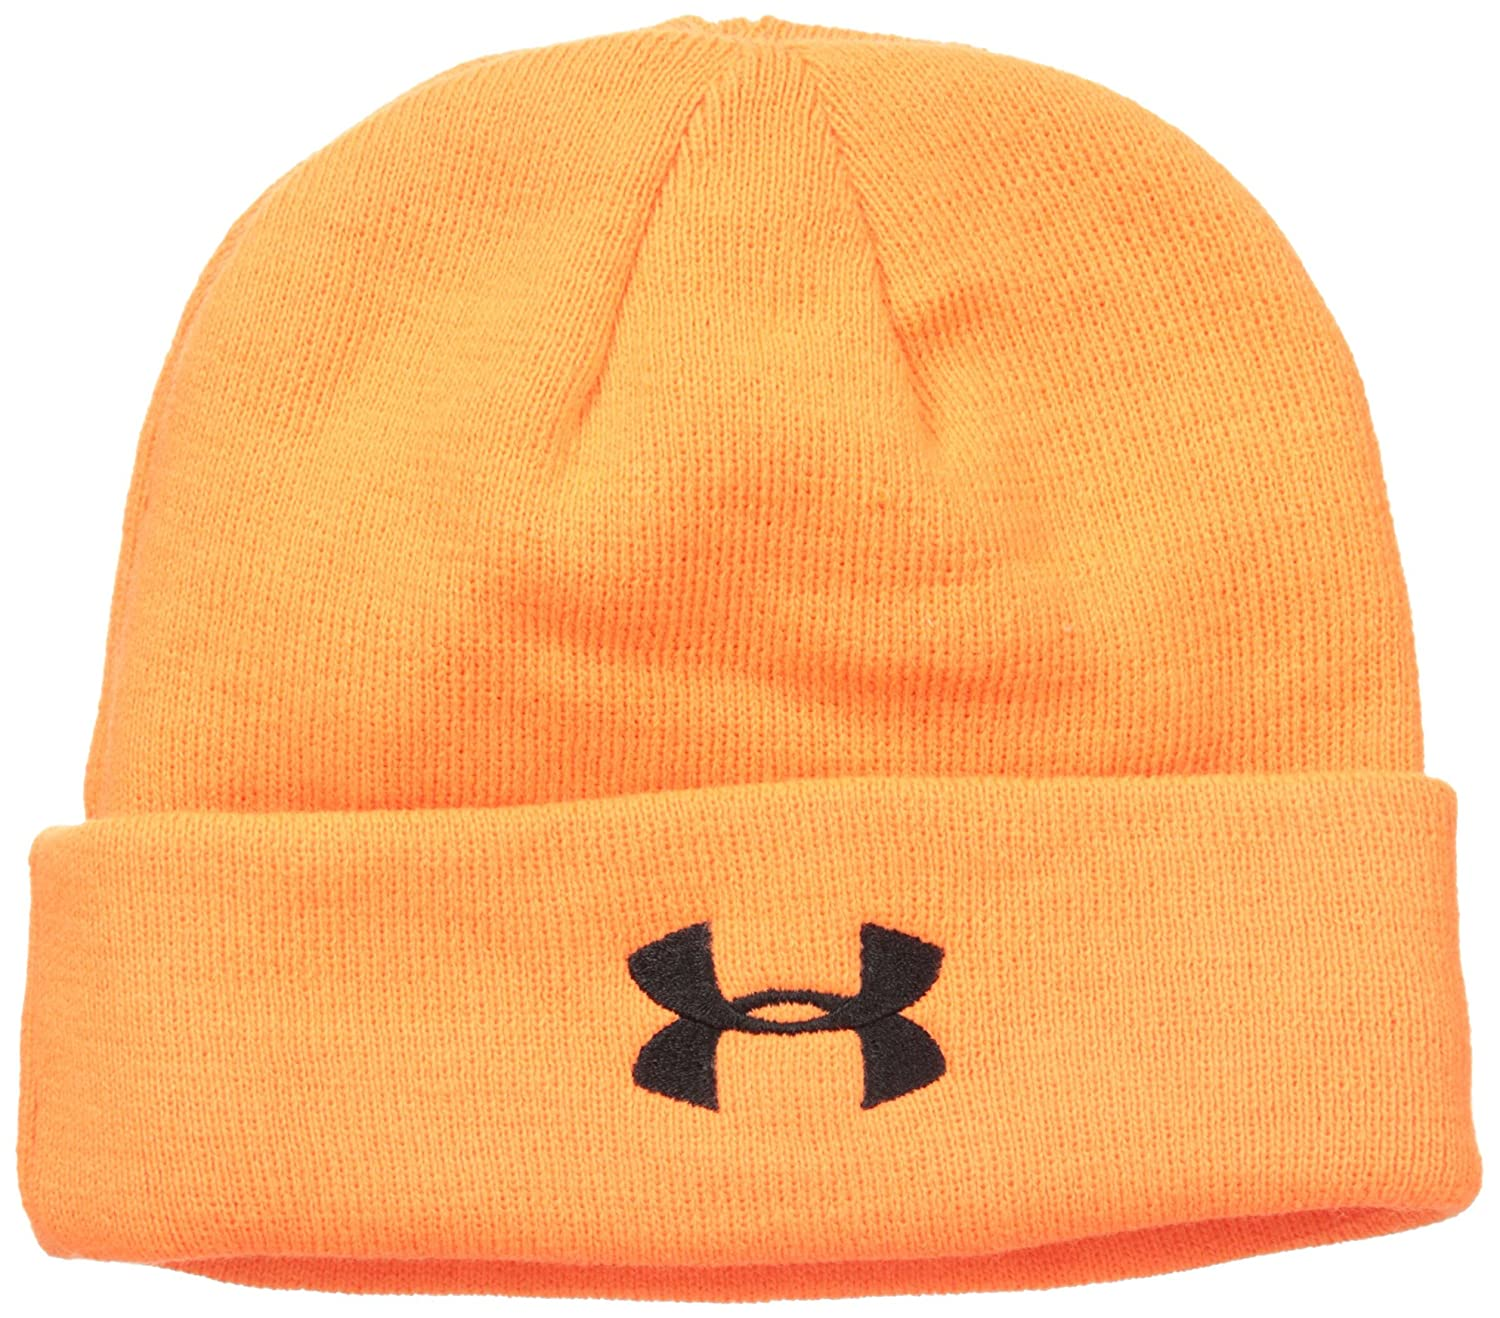 25af00f4b175c Amazon.com  Under Armour Men s Tactical Stealth Beanie  Clothing